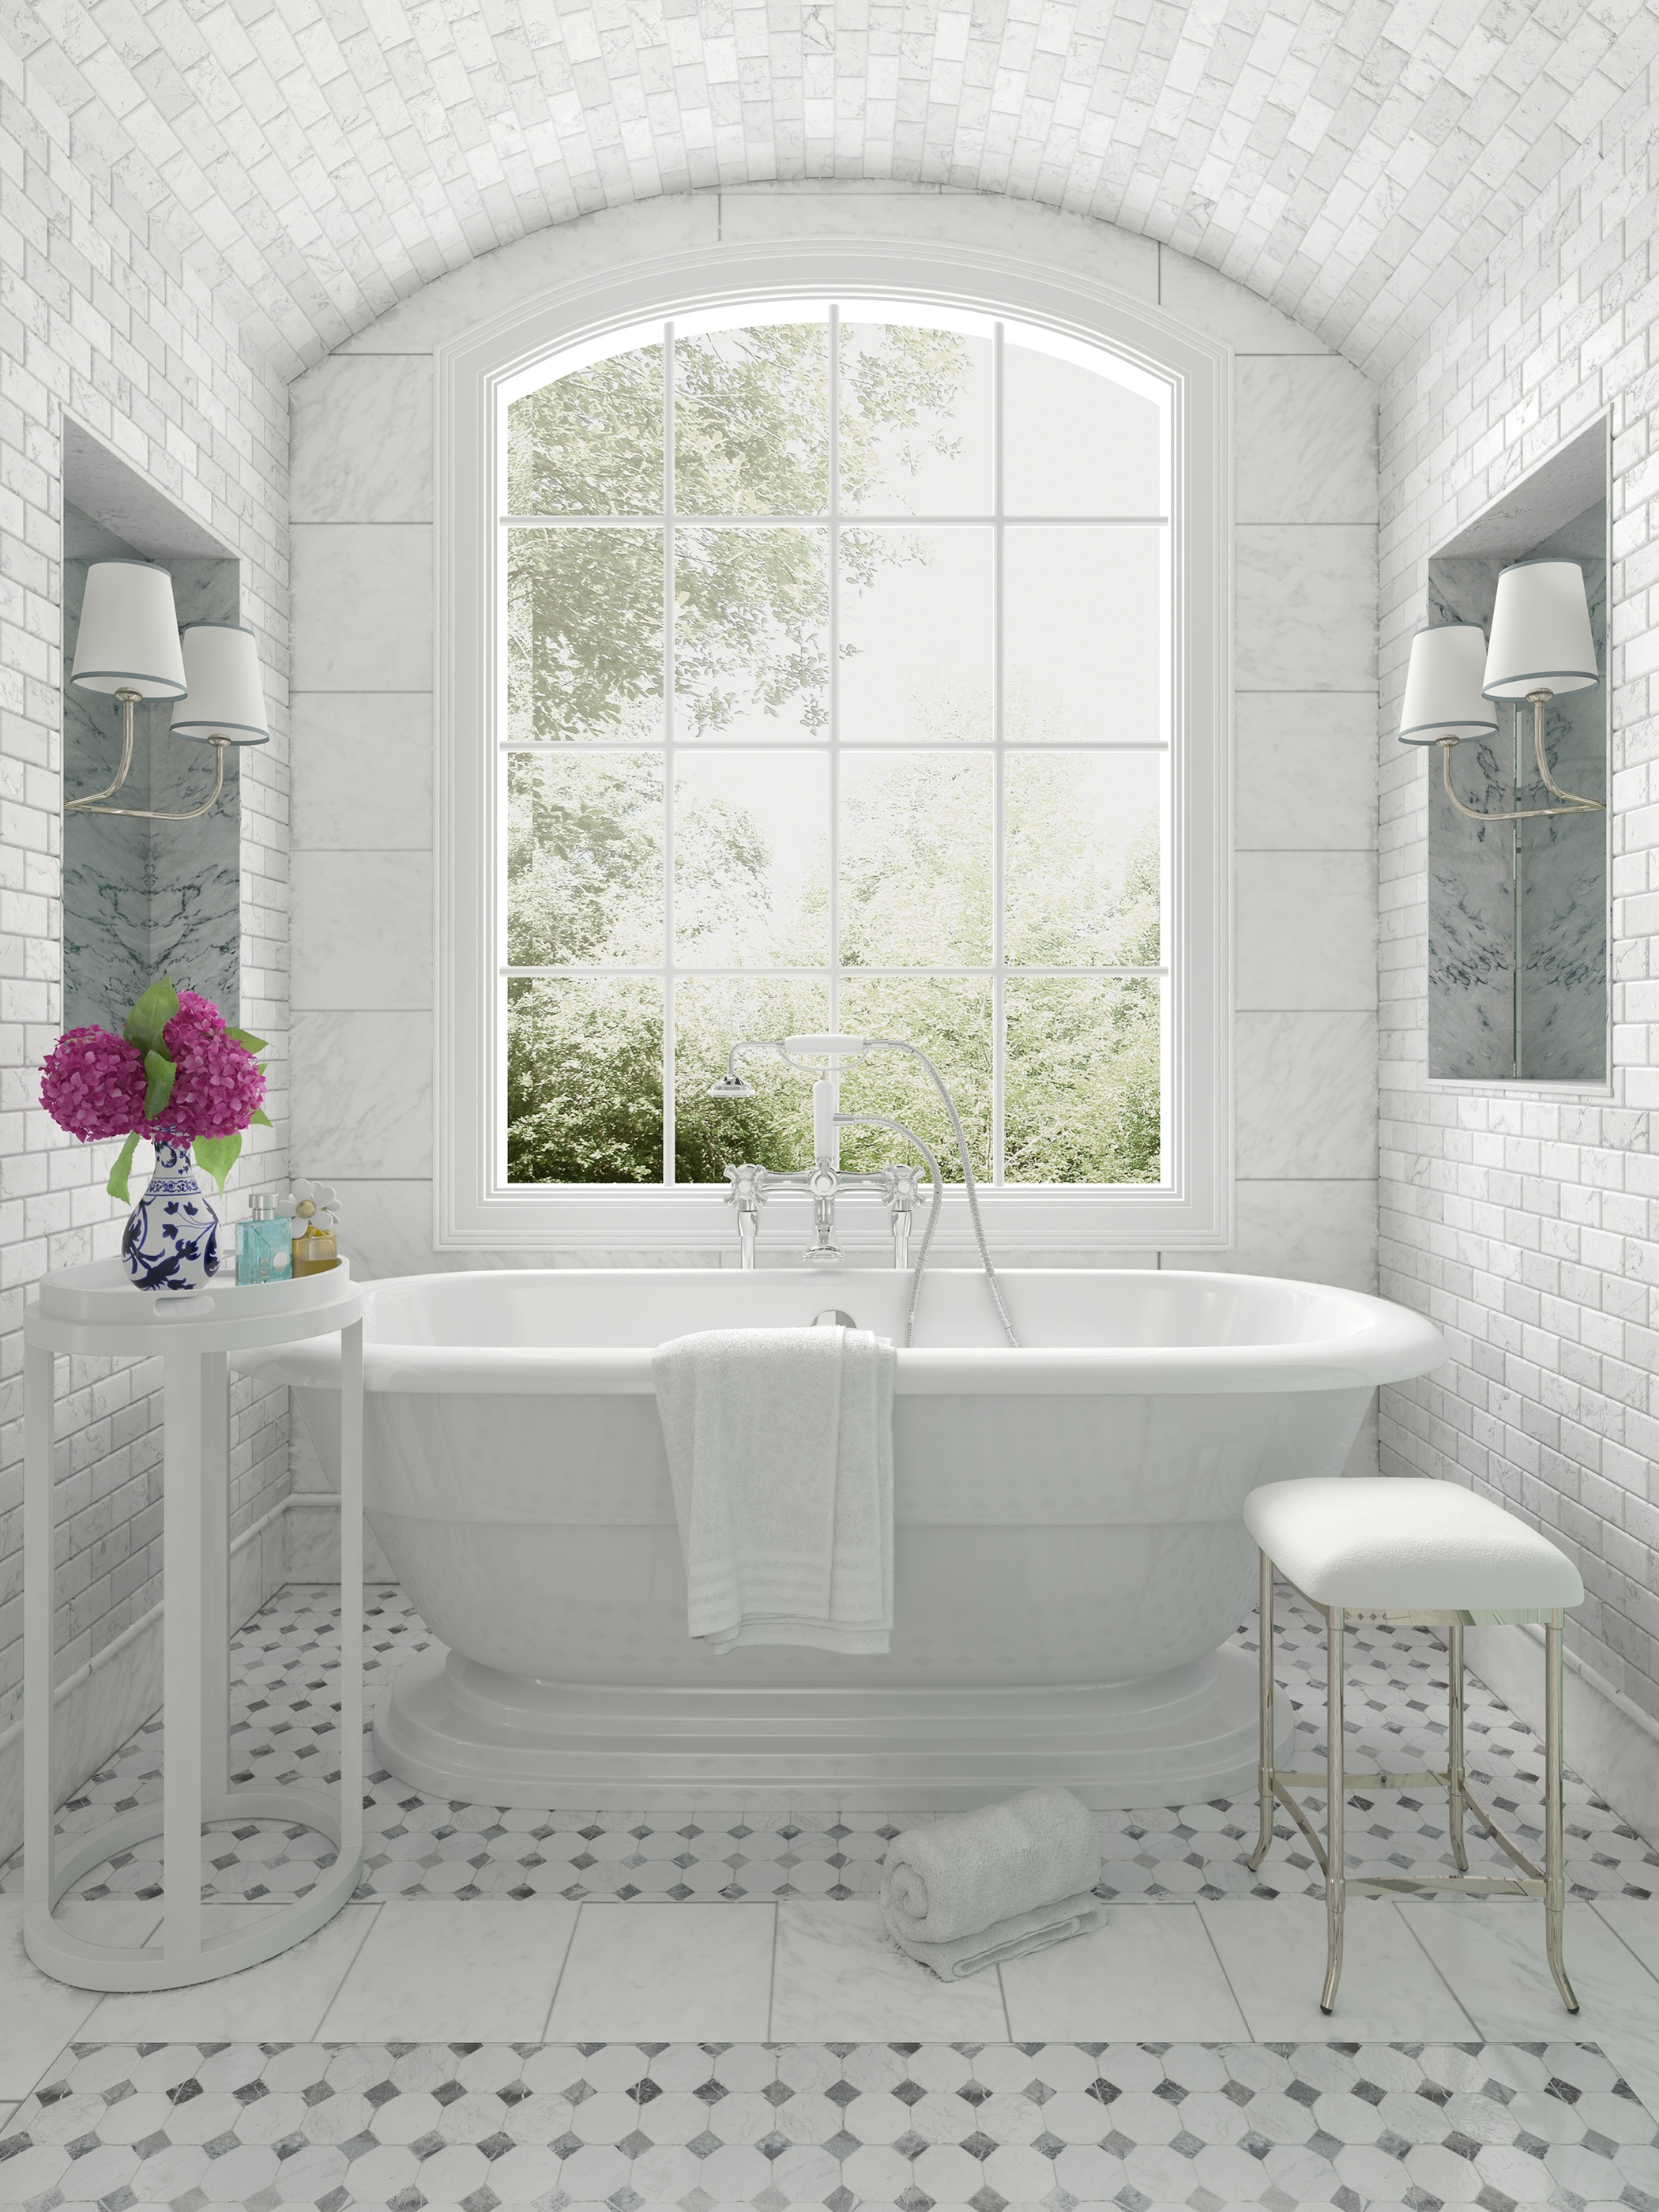 An alumhybrid architechtural whitw window in a white bathroom with a view of the outside greenery.